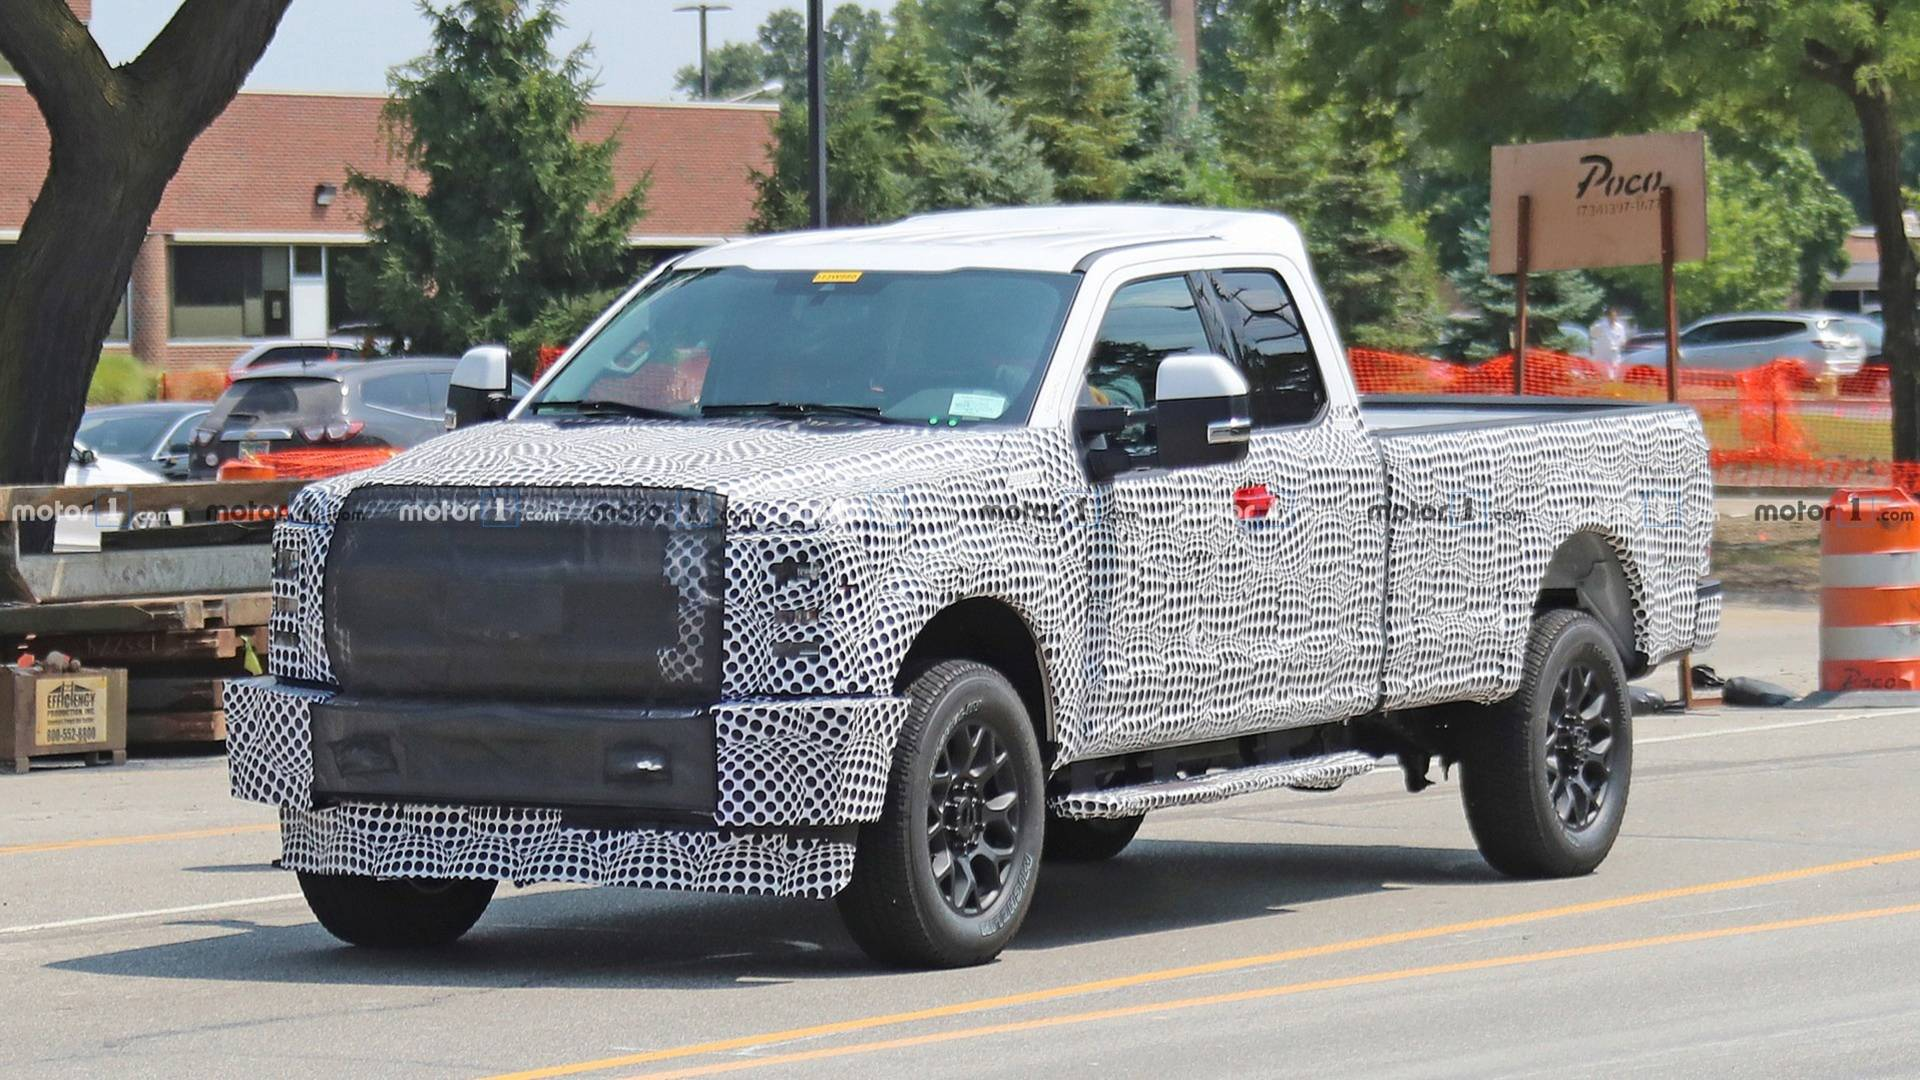 92 A 2020 Ford F350 Super Duty Picture